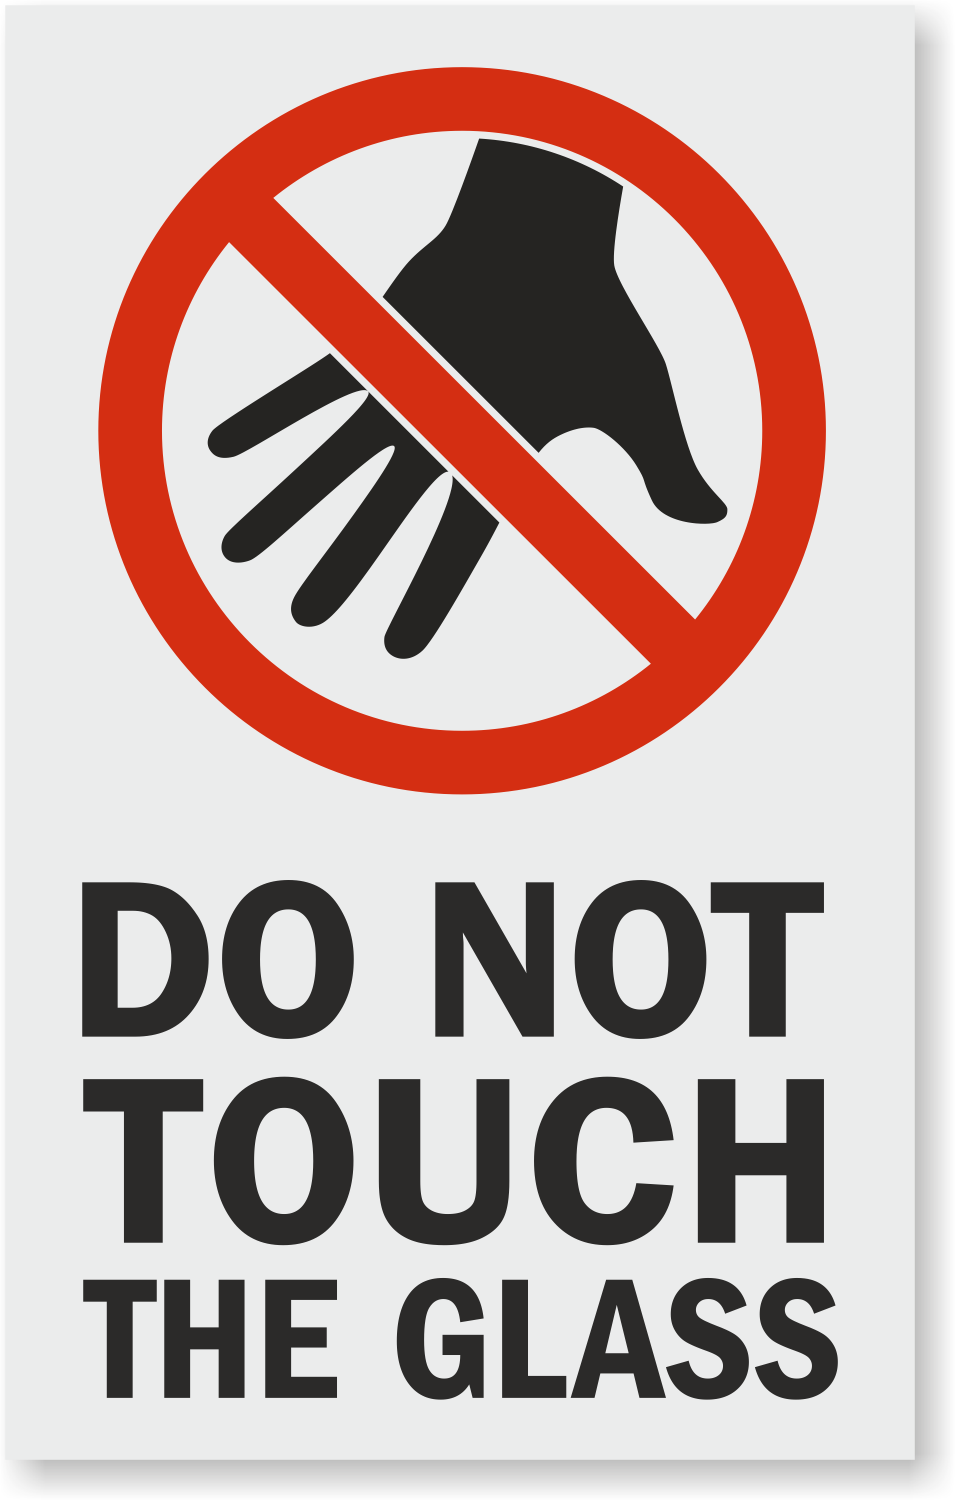 Do Not Touch The Glass Window Decal Signs Sku Lb 4294